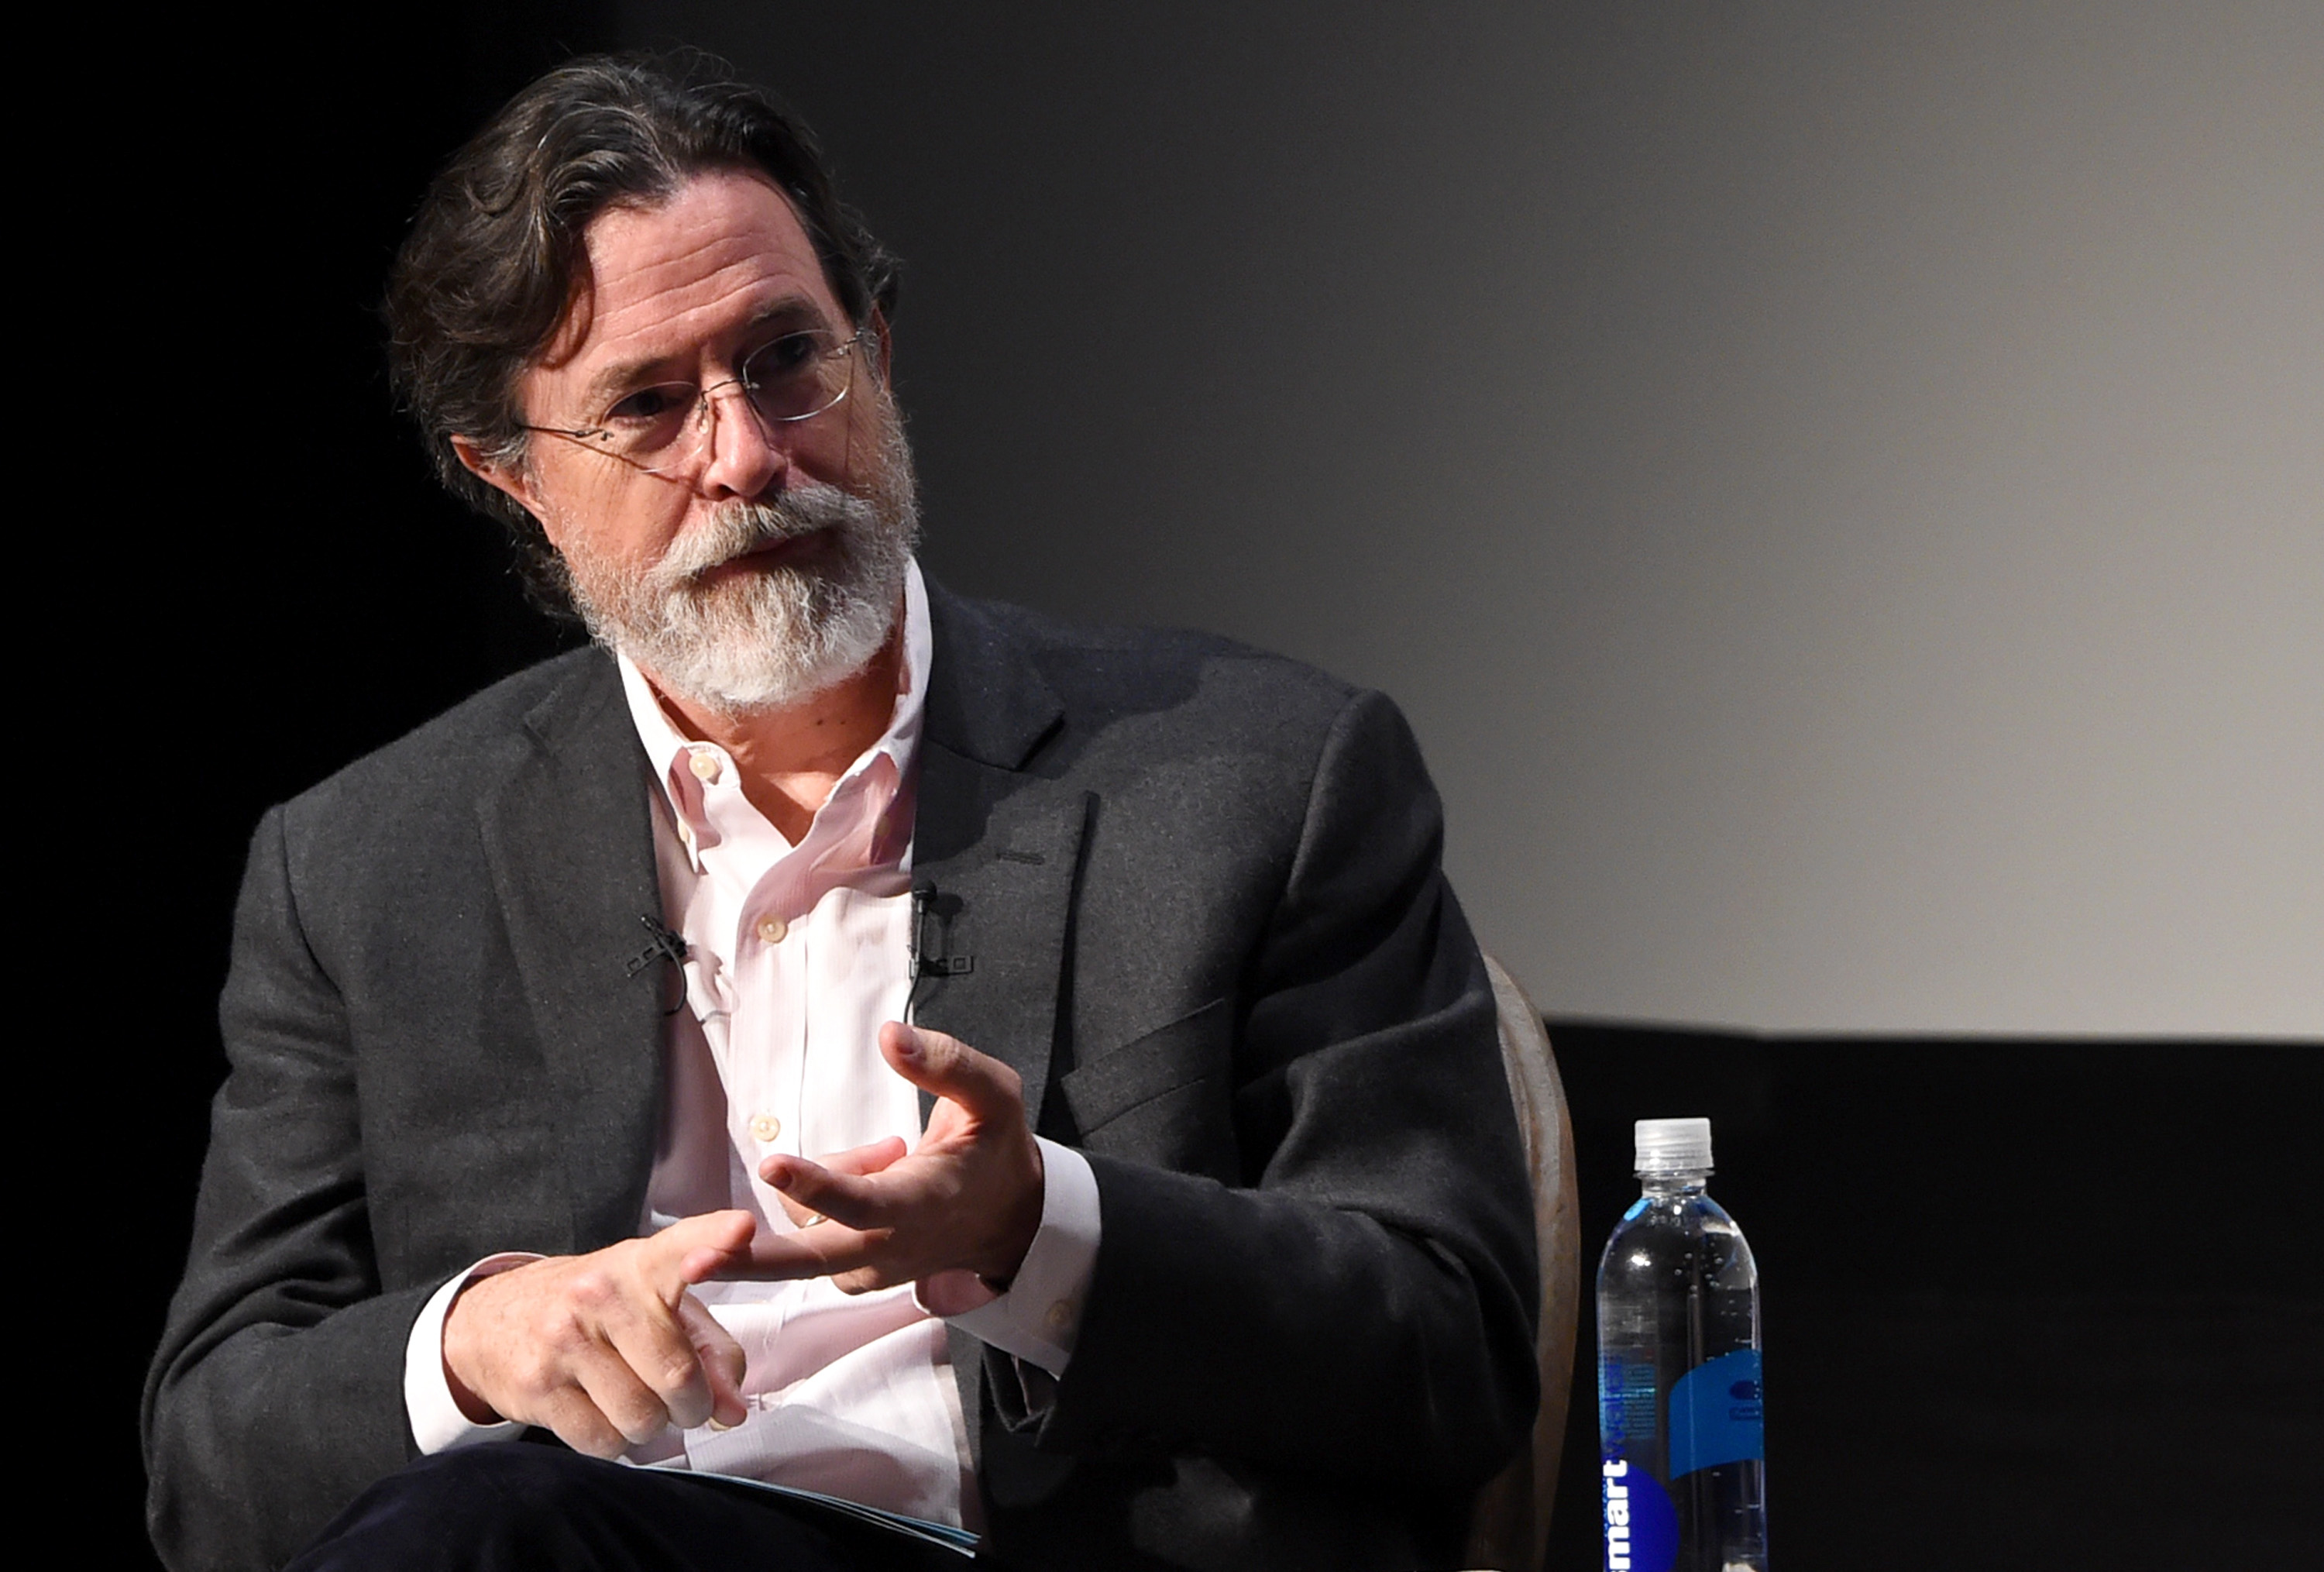 attends Tribeca Talks: Director Series: George Lucas With Stephen Colbert during the 2015 Tribeca Film Festival at BMCC Tribeca PAC on April 17, 2015 in New York City.